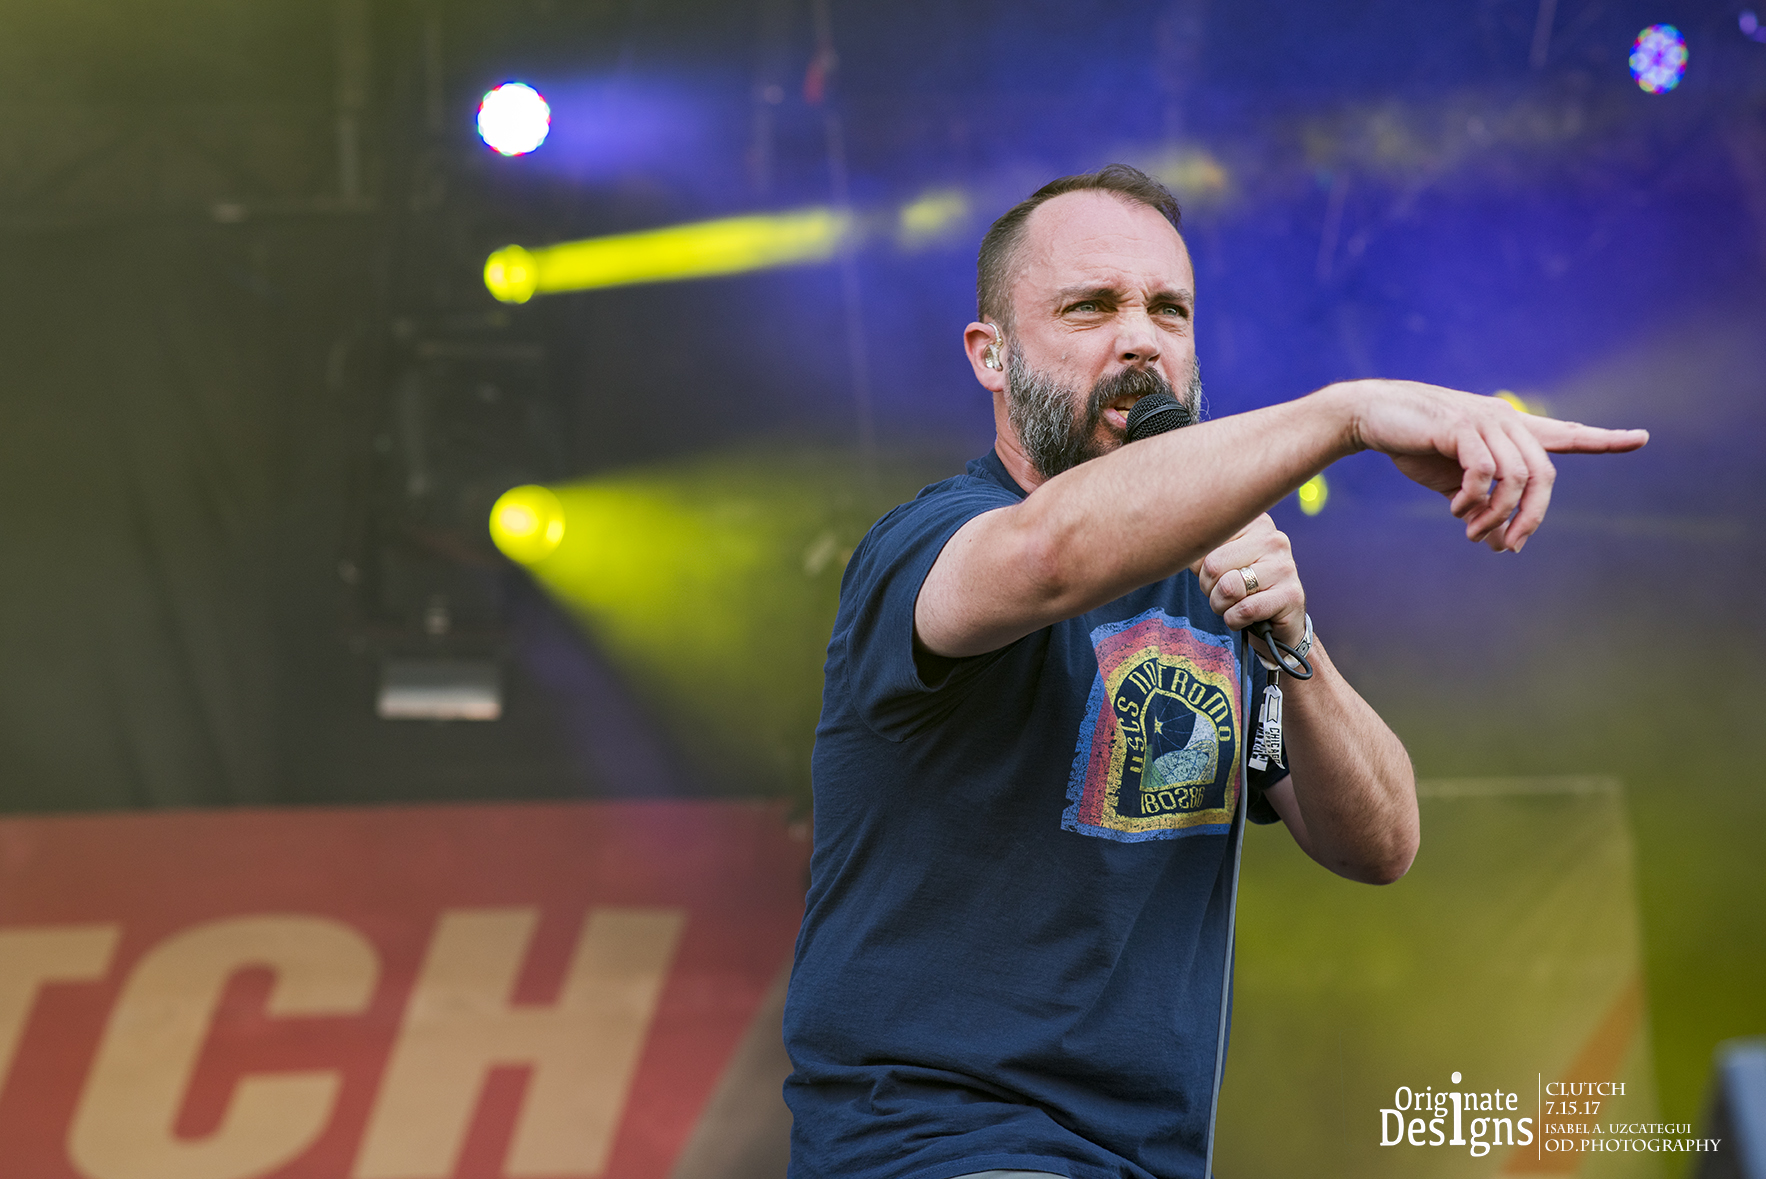 Images of Clutch Albums Ranked - #rock-cafe